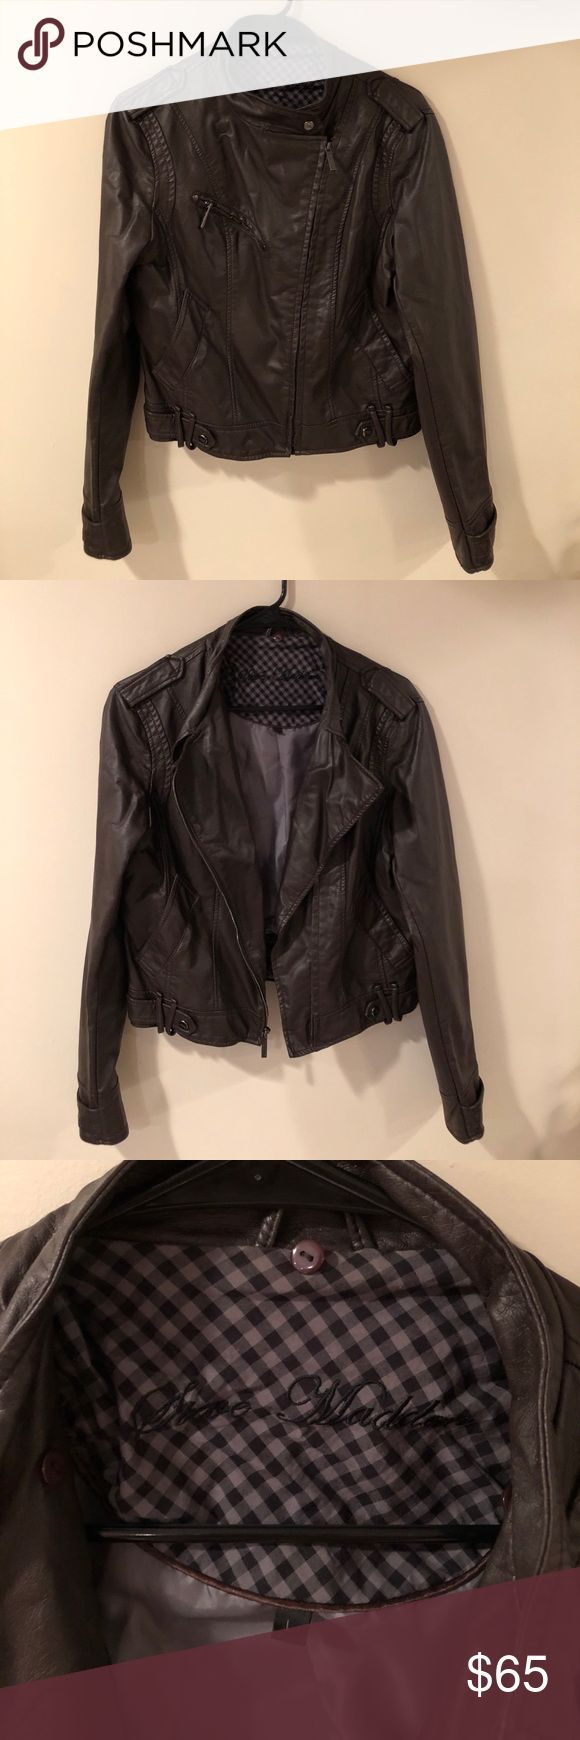 Steve Madden Faux Leather Jacket Size Large This cute jacket has been pre-loved and is in good condition! There are two indents near the top right back that were pressed against something in my closet (see photo). Please let me know if you have any questions. Steve Madden Jackets & Coats